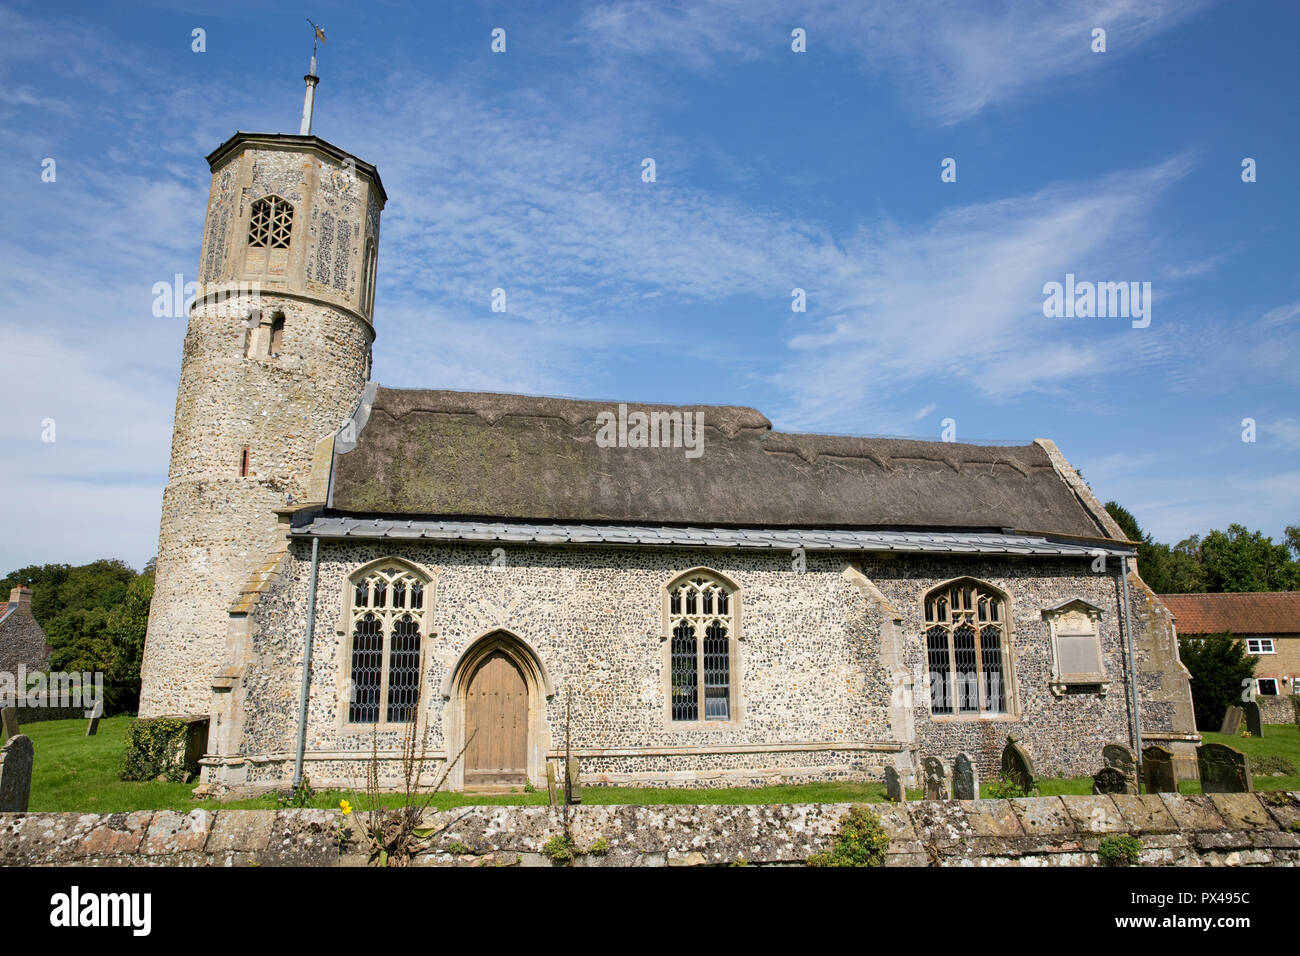 St Mary the Virgin Church, with its octagonal tower and thatched roof nave in the village of Beachamwell, Norfolk, United Kingdom Stock Photo